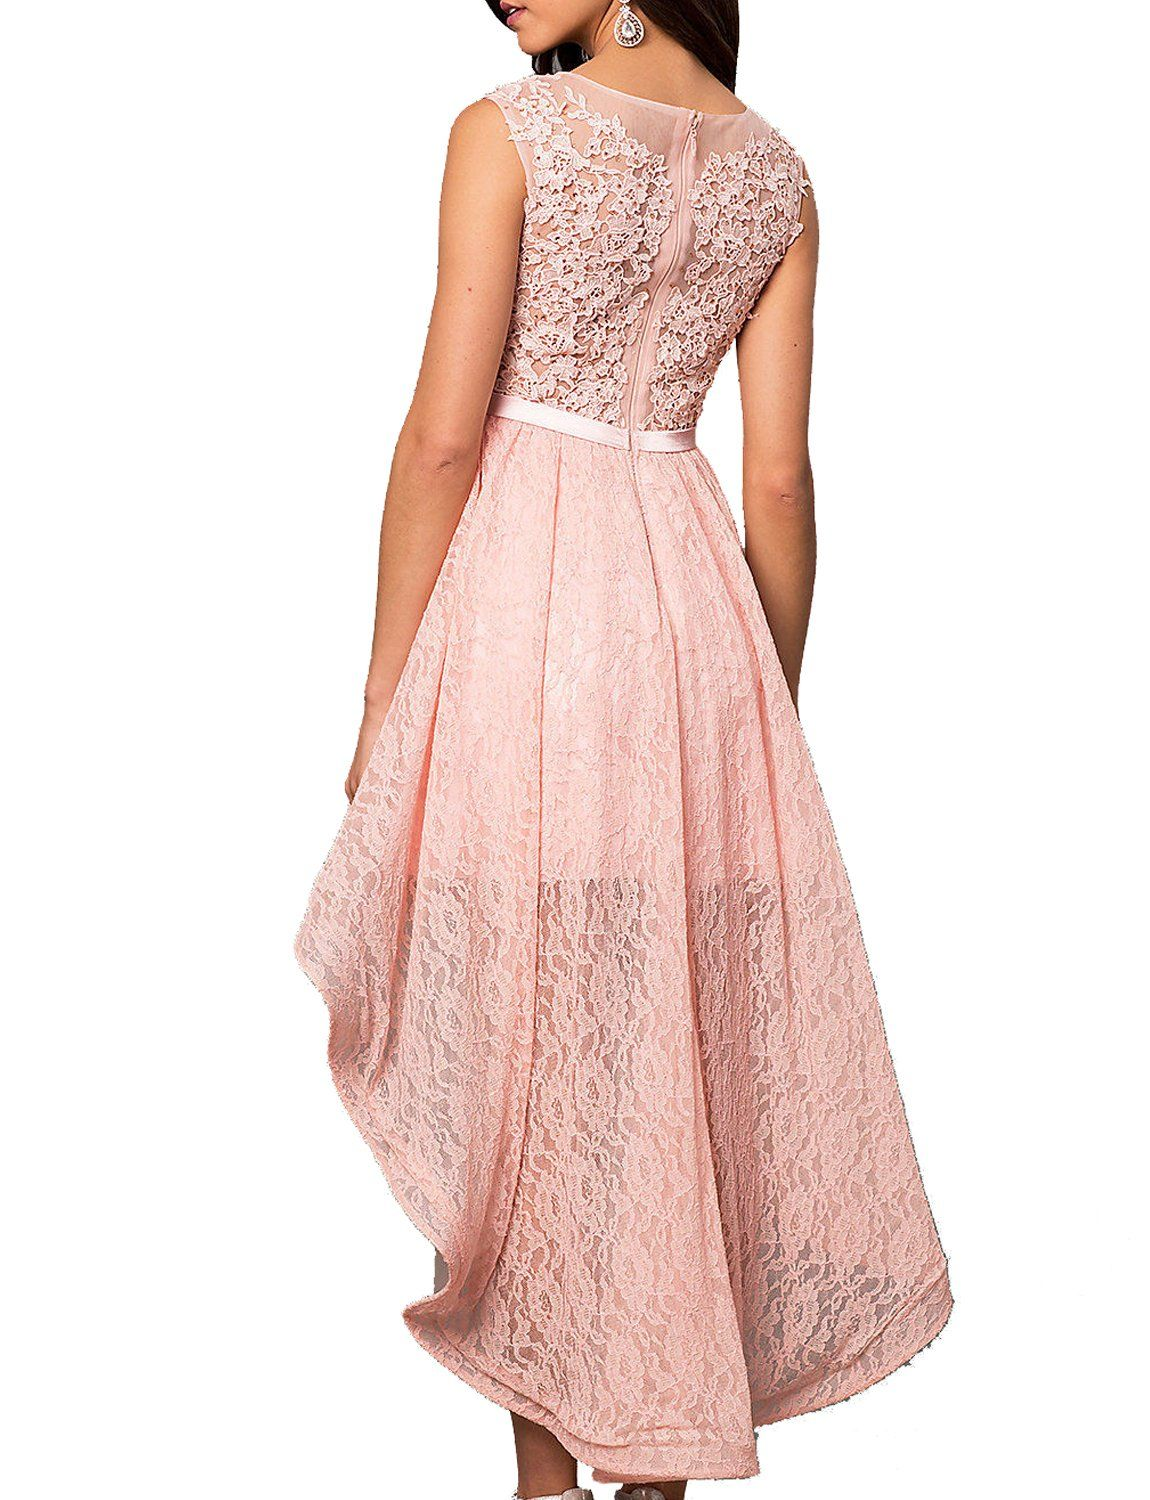 Lily wedding womens lace beaded high low prom dresses long